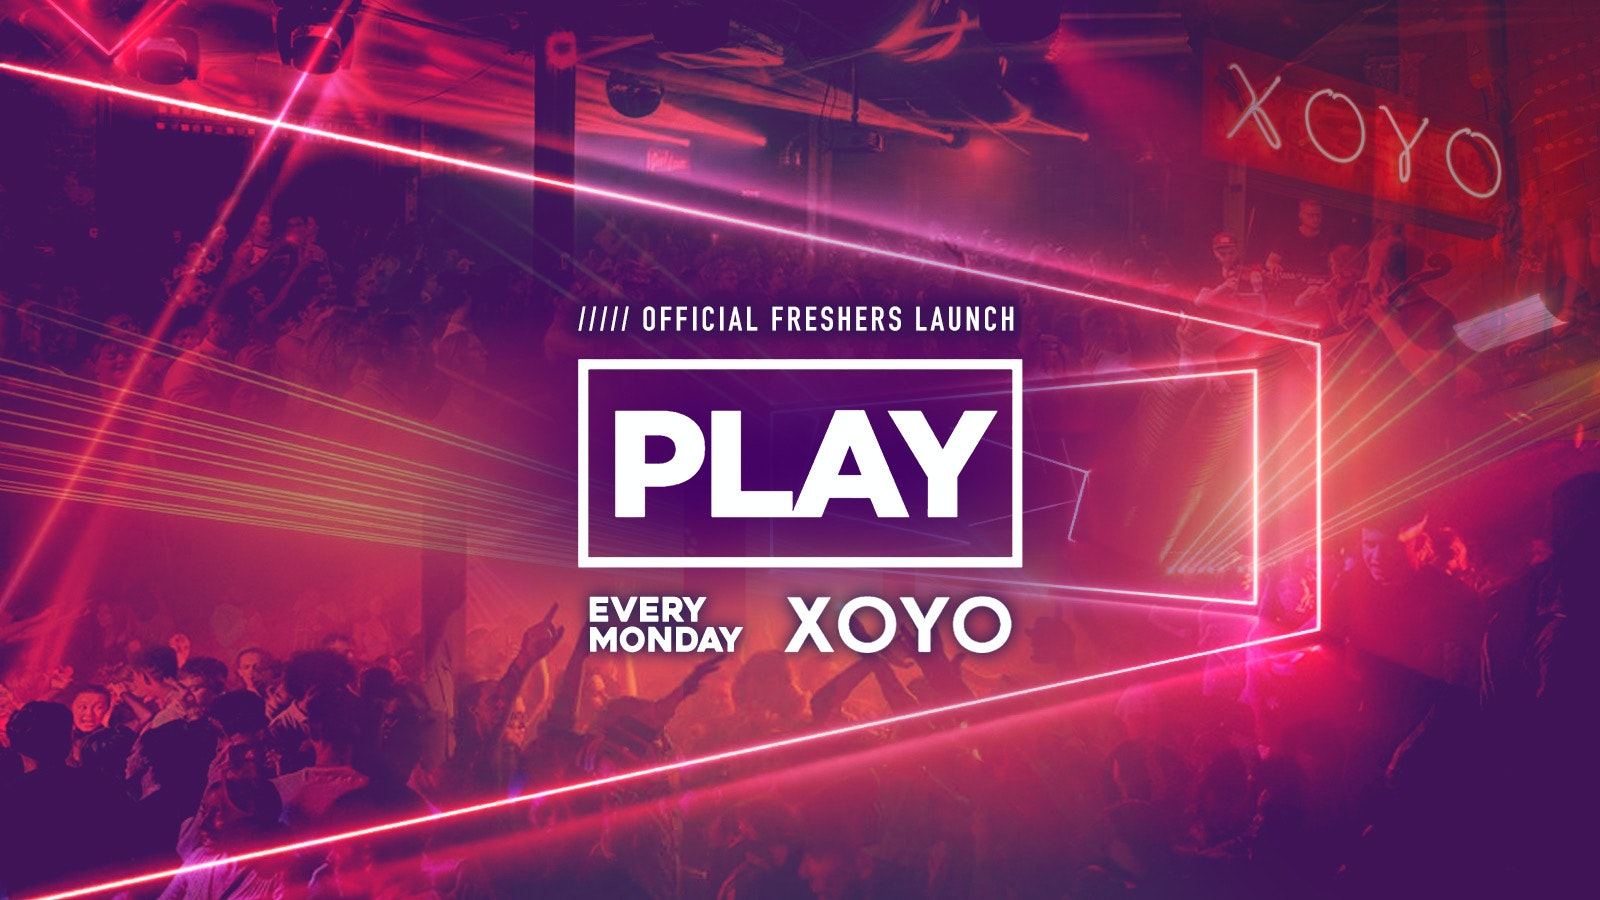 PLAY LONDON – FRESHERS LAUNCH PART 1 // XOYO – Every Monday